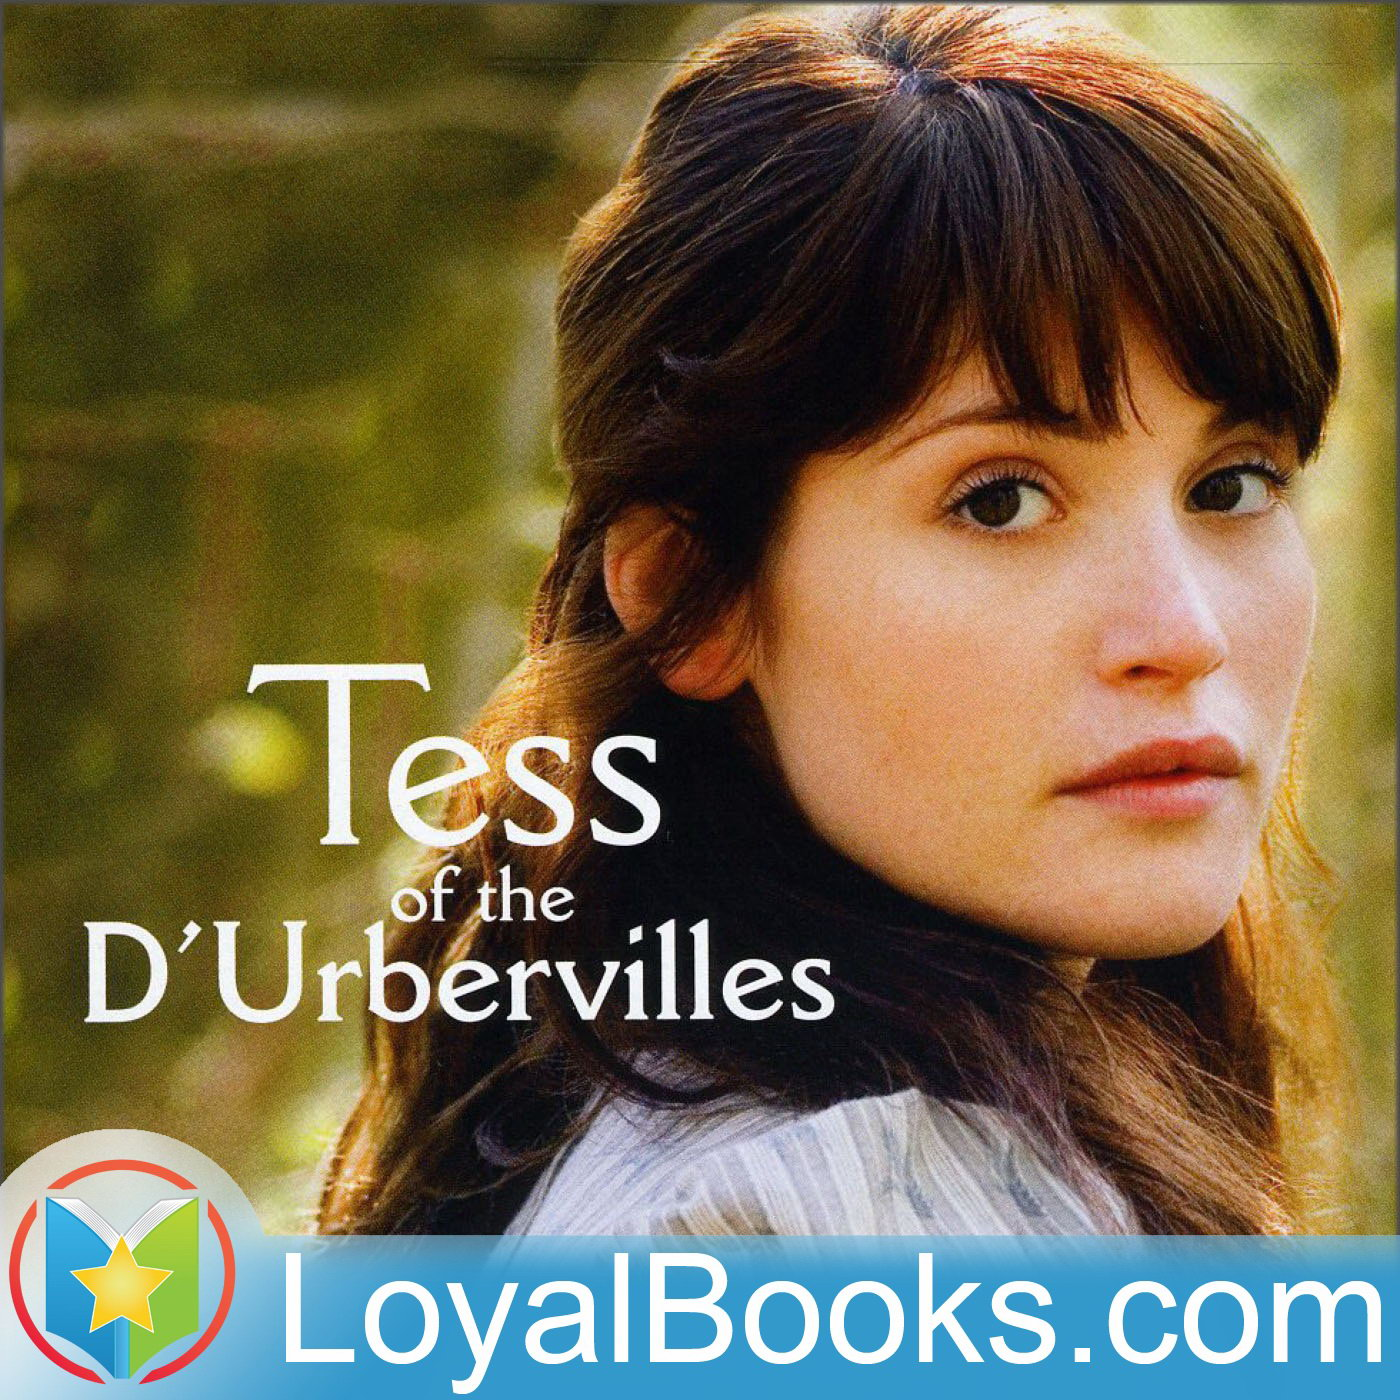 <![CDATA[Tess of the d'Urbervilles by Thomas Hardy]]>